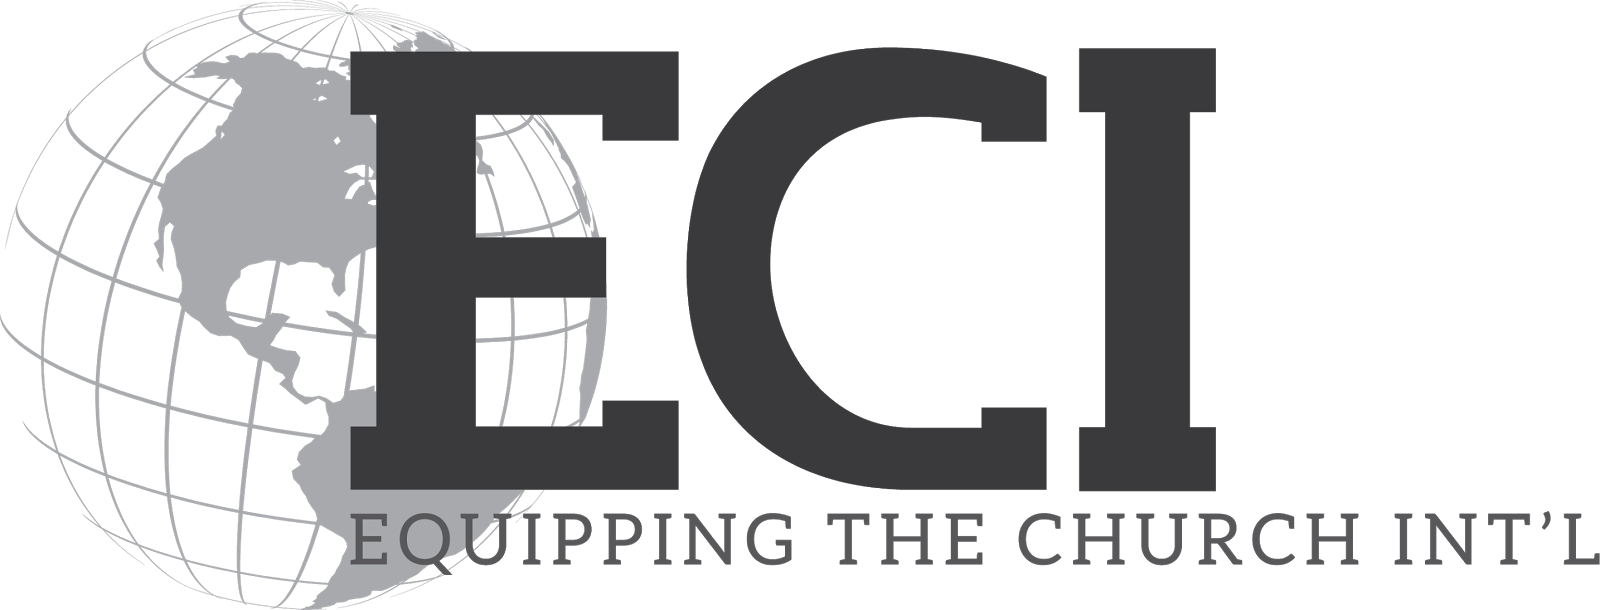 Mission clipart church attendance. Who is eci equipping